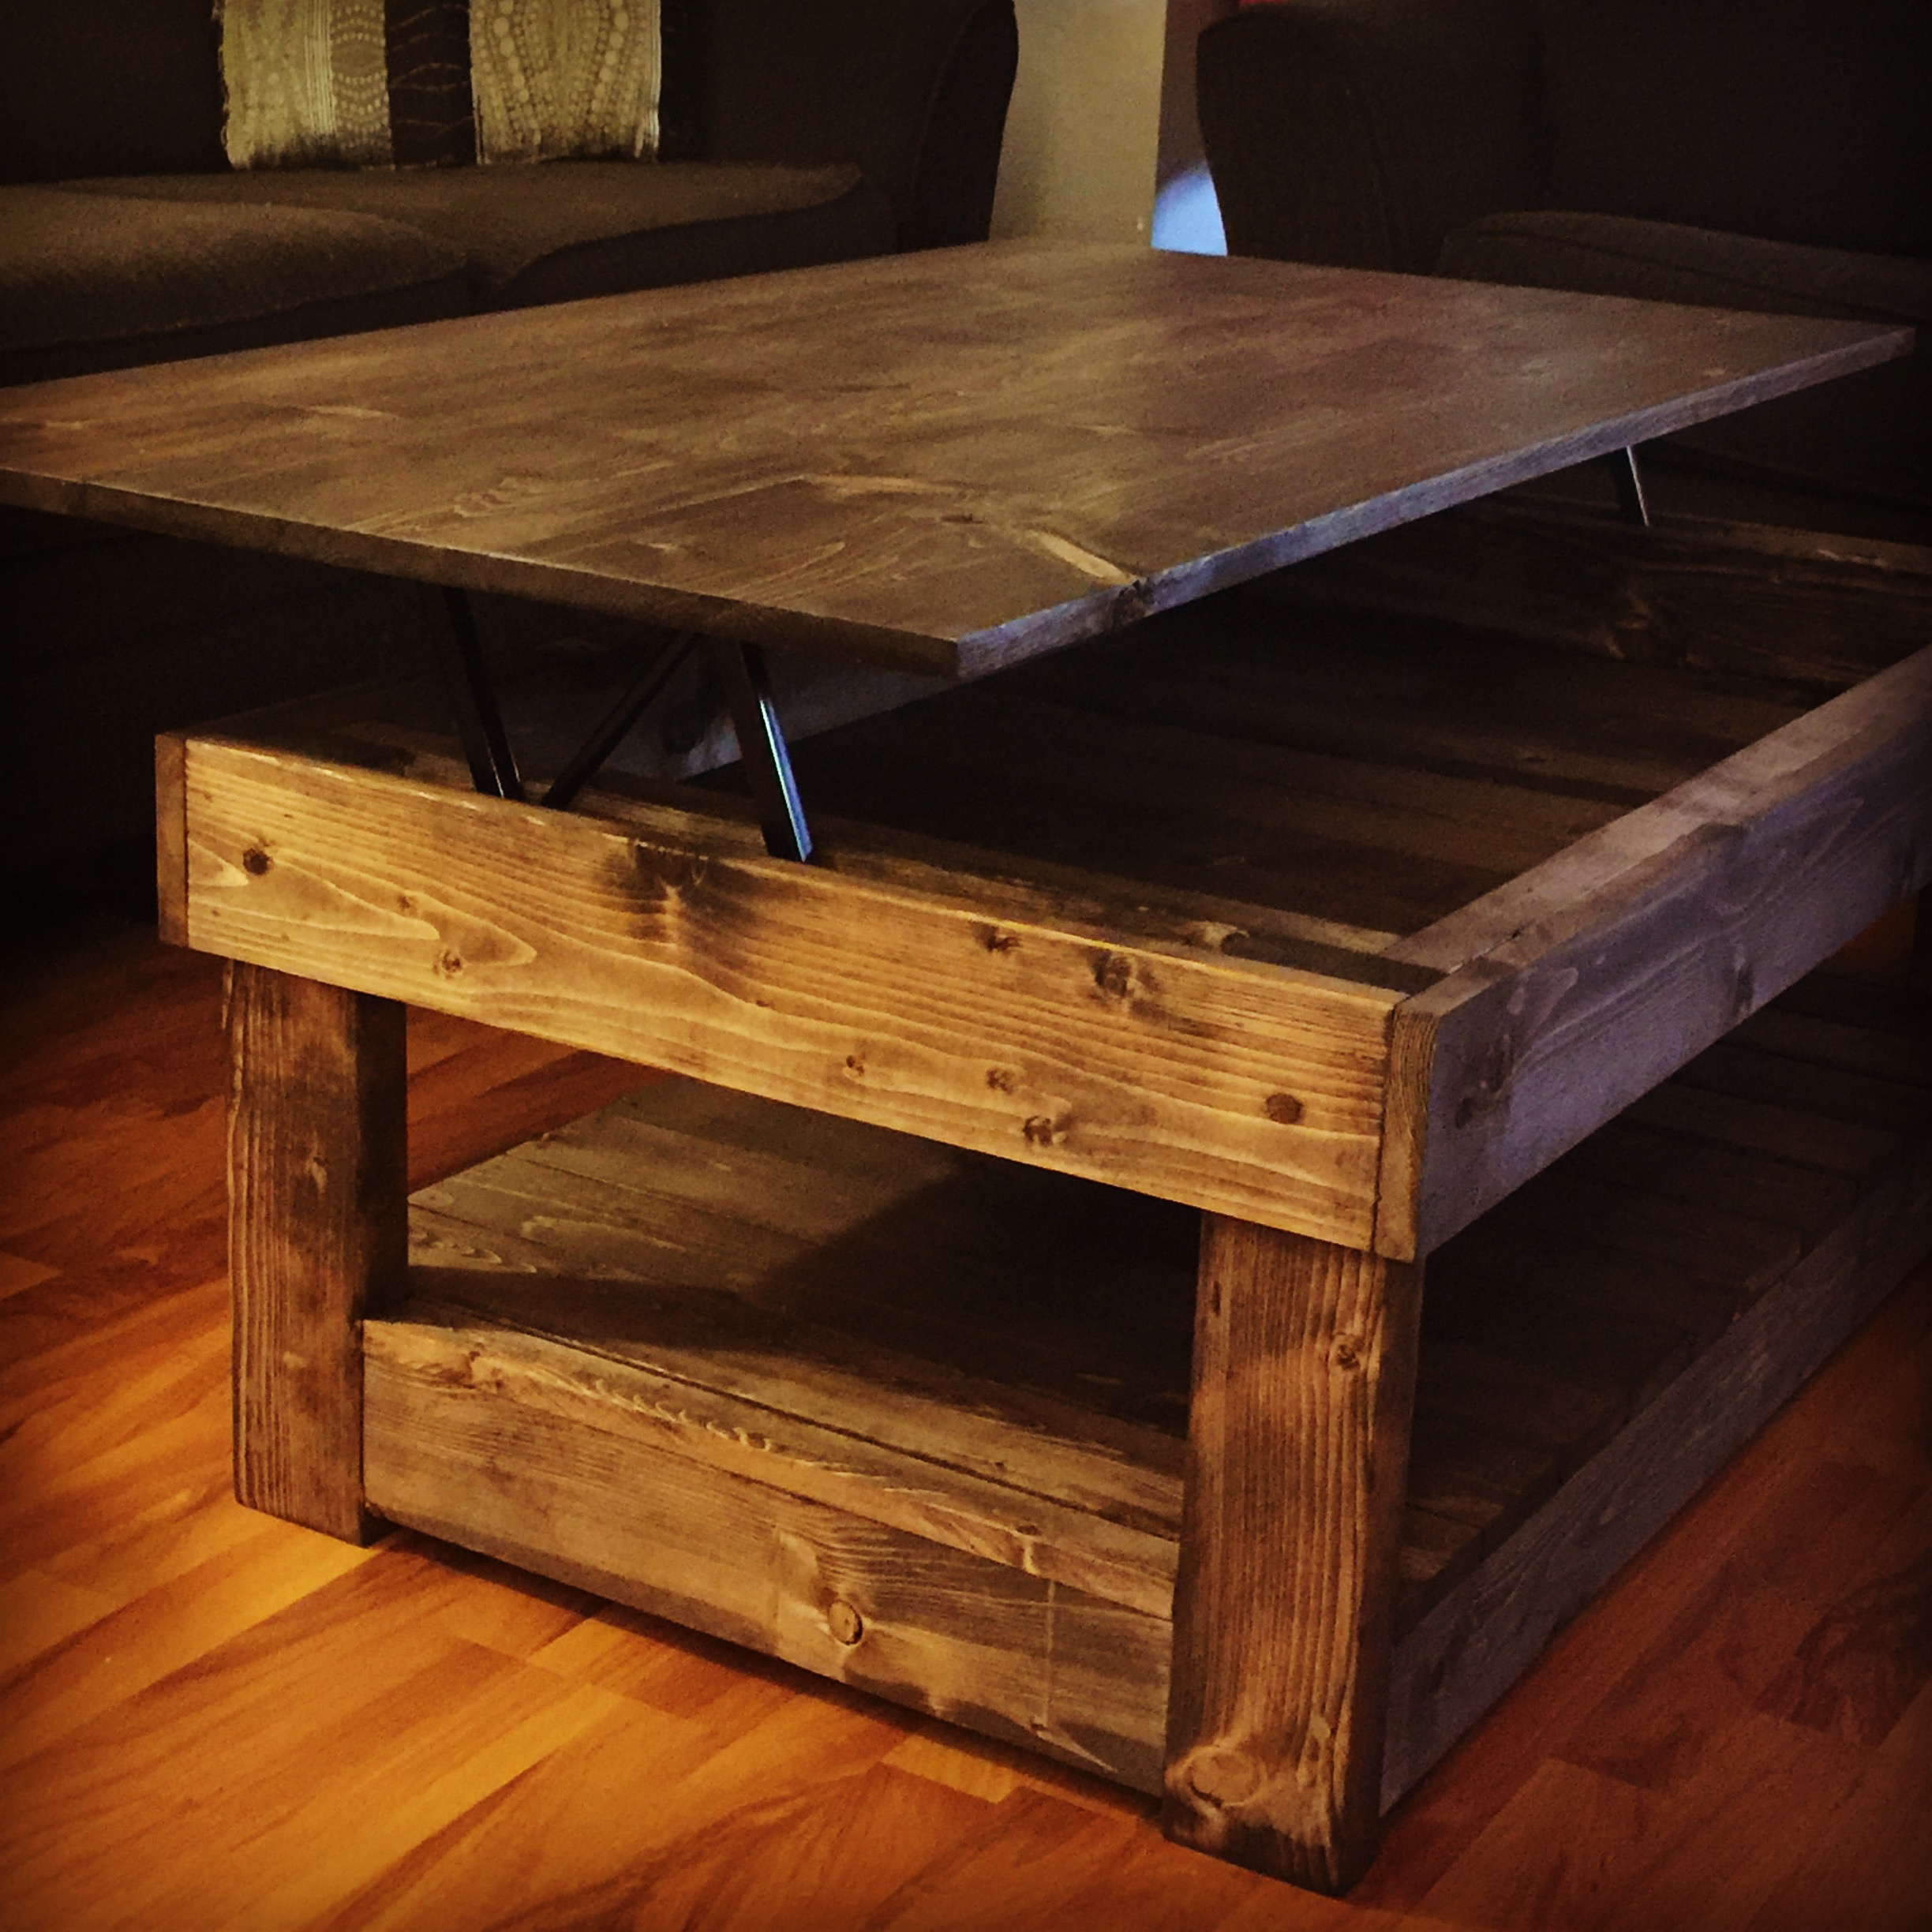 Top Lift Coffee Table Rustic Lift Top Coffee Table Pine 43main